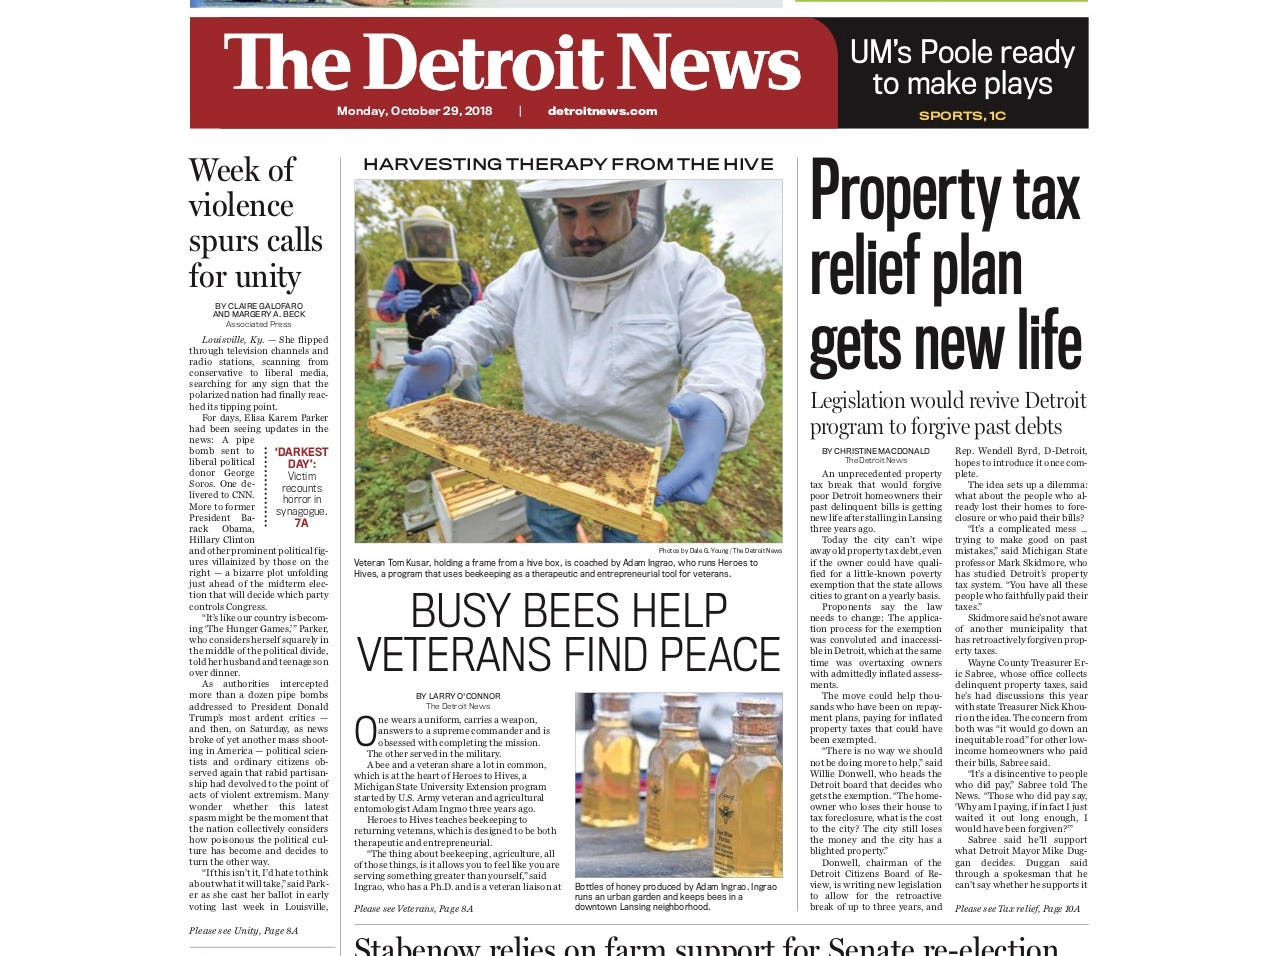 The front page of The Detroit News on October 29, 2018.